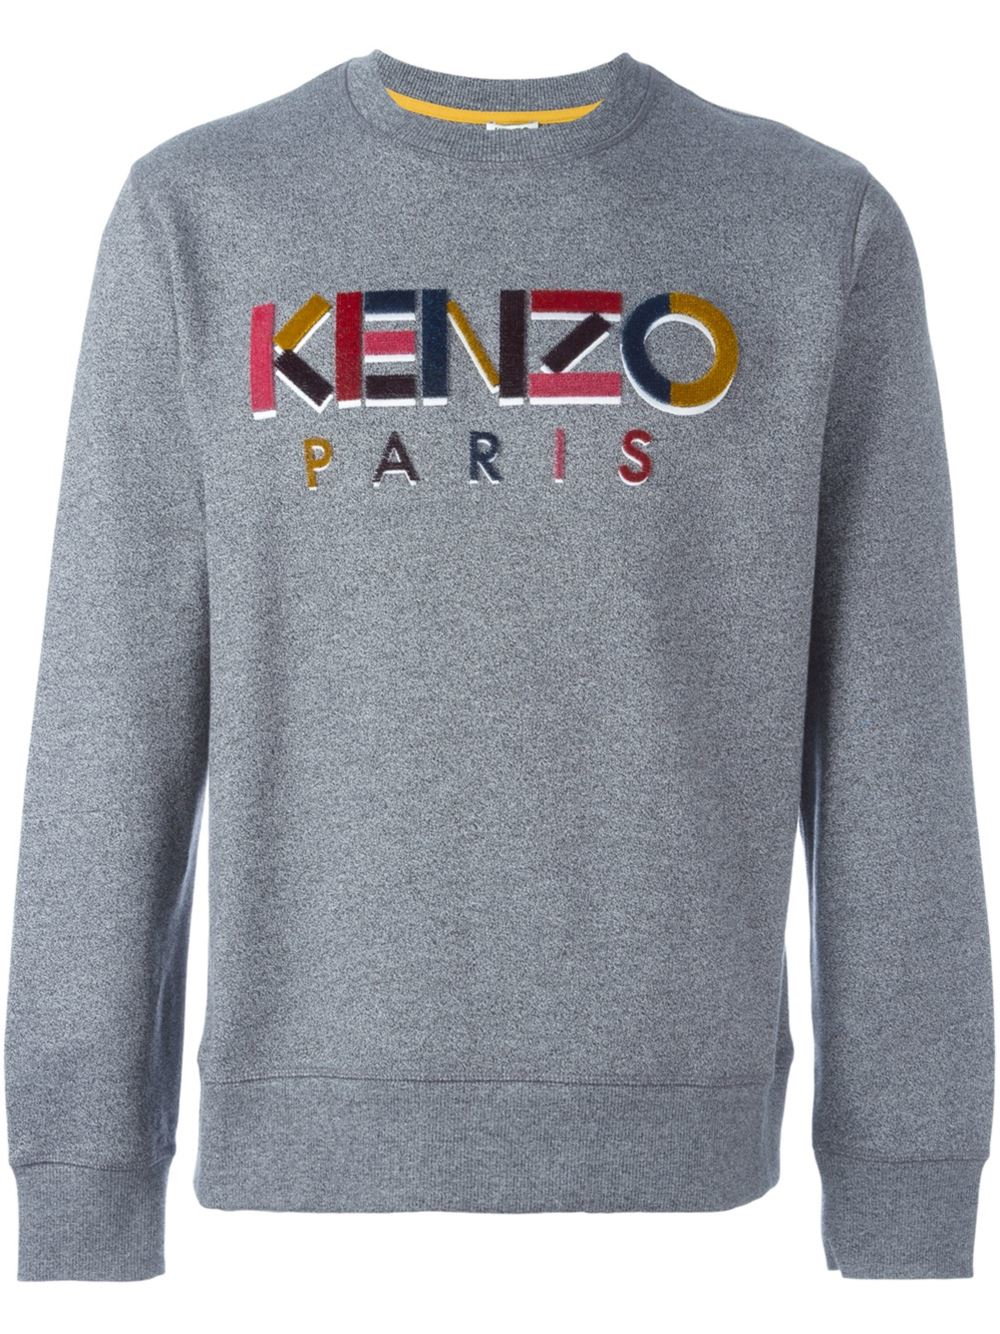 kenzo cotton sweatshirt with textured logo in gray for men lyst. Black Bedroom Furniture Sets. Home Design Ideas